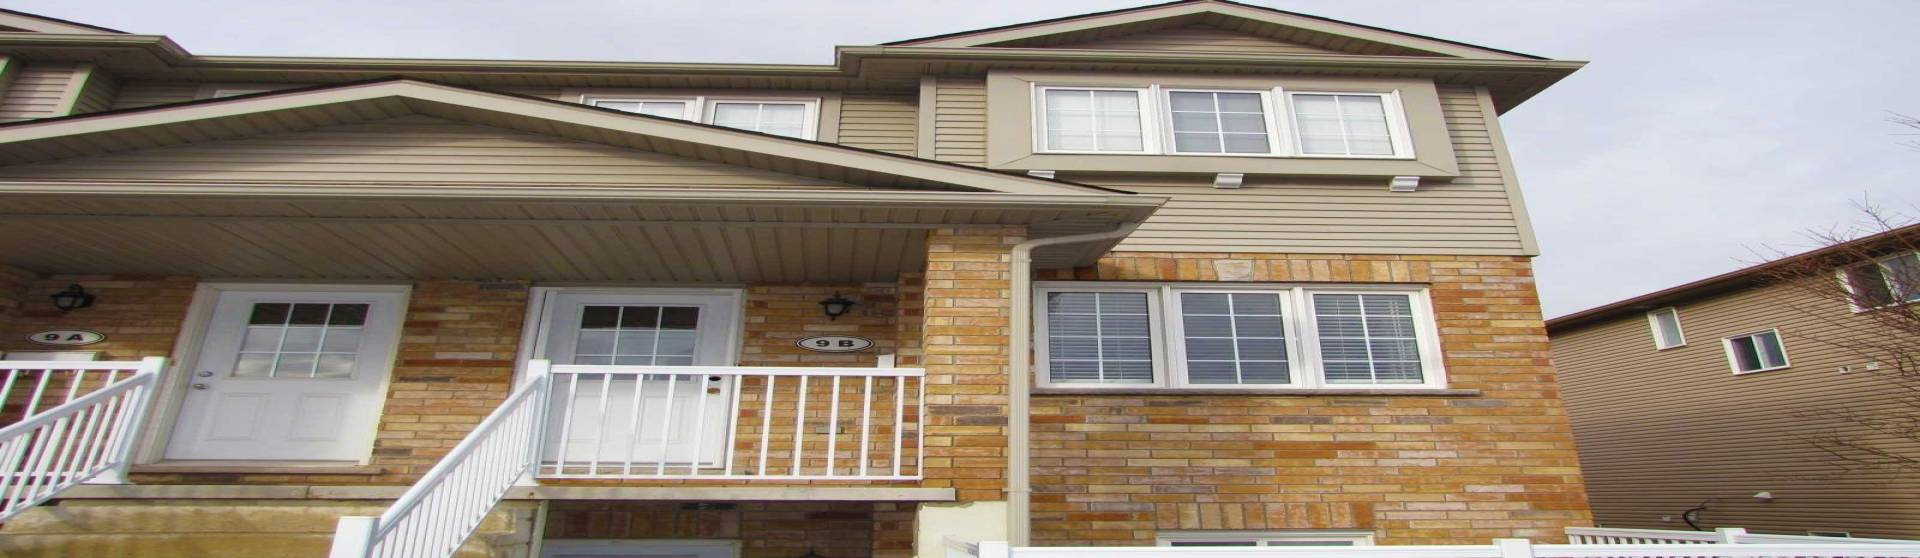 50 Howe Dr, Kitchener, Ontario N2E0A3, 3 Bedrooms Bedrooms, 8 Rooms Rooms,2 BathroomsBathrooms,Condo Townhouse,Lease,Howe,X4775667